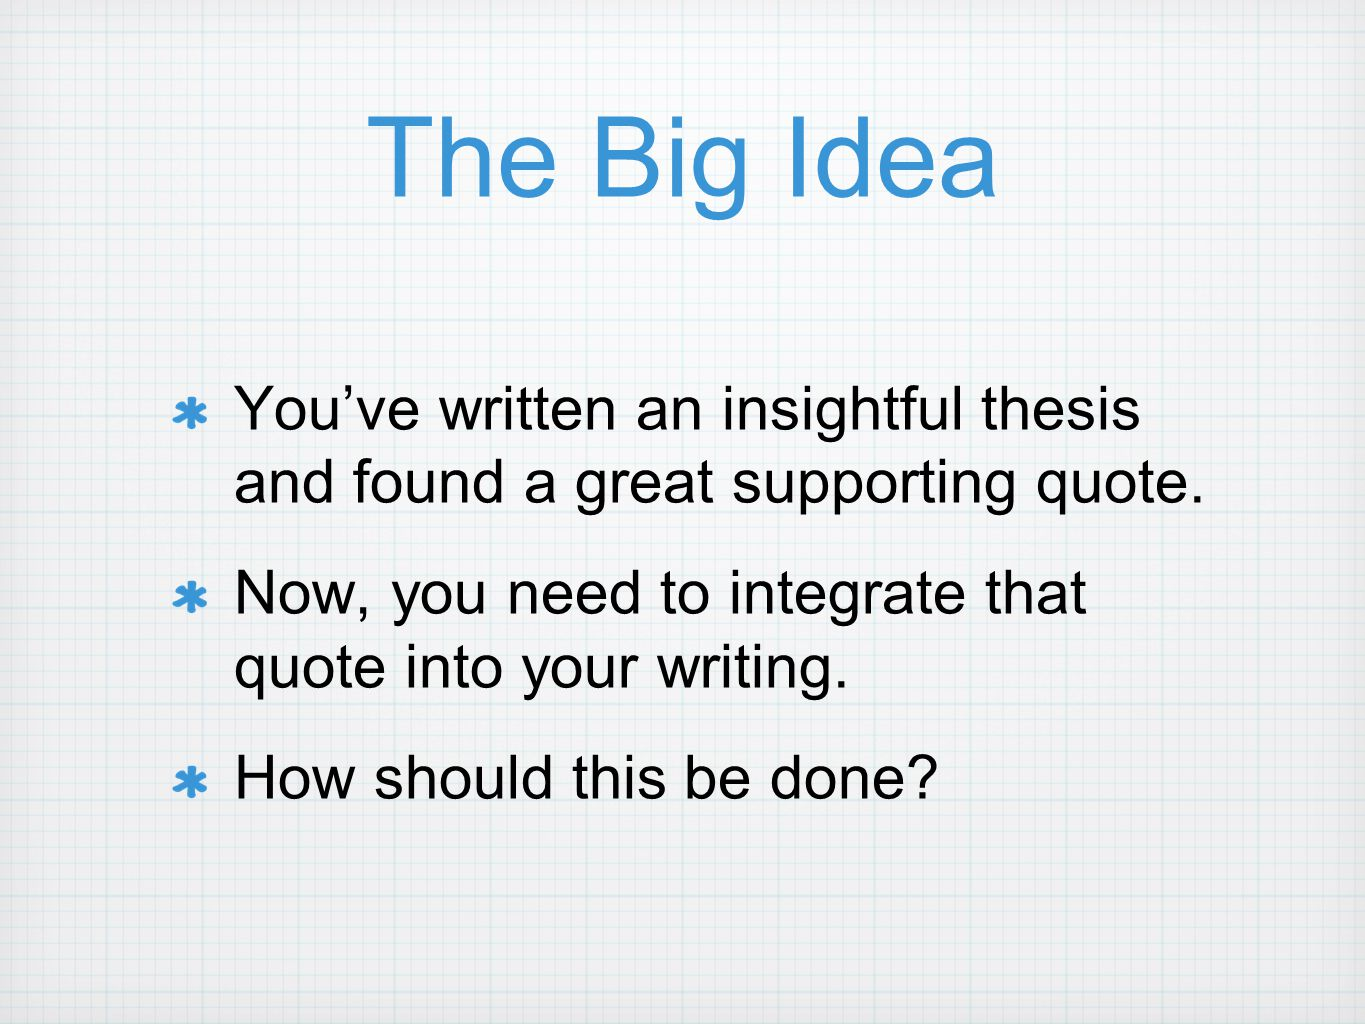 writing a great thesis Although this thesis is a bit wordy, it does accomplish all three of the goals of a successful thesis the reader knows what you plan to discuss in the paper, what you are going to argue about your topic, and why it is important.